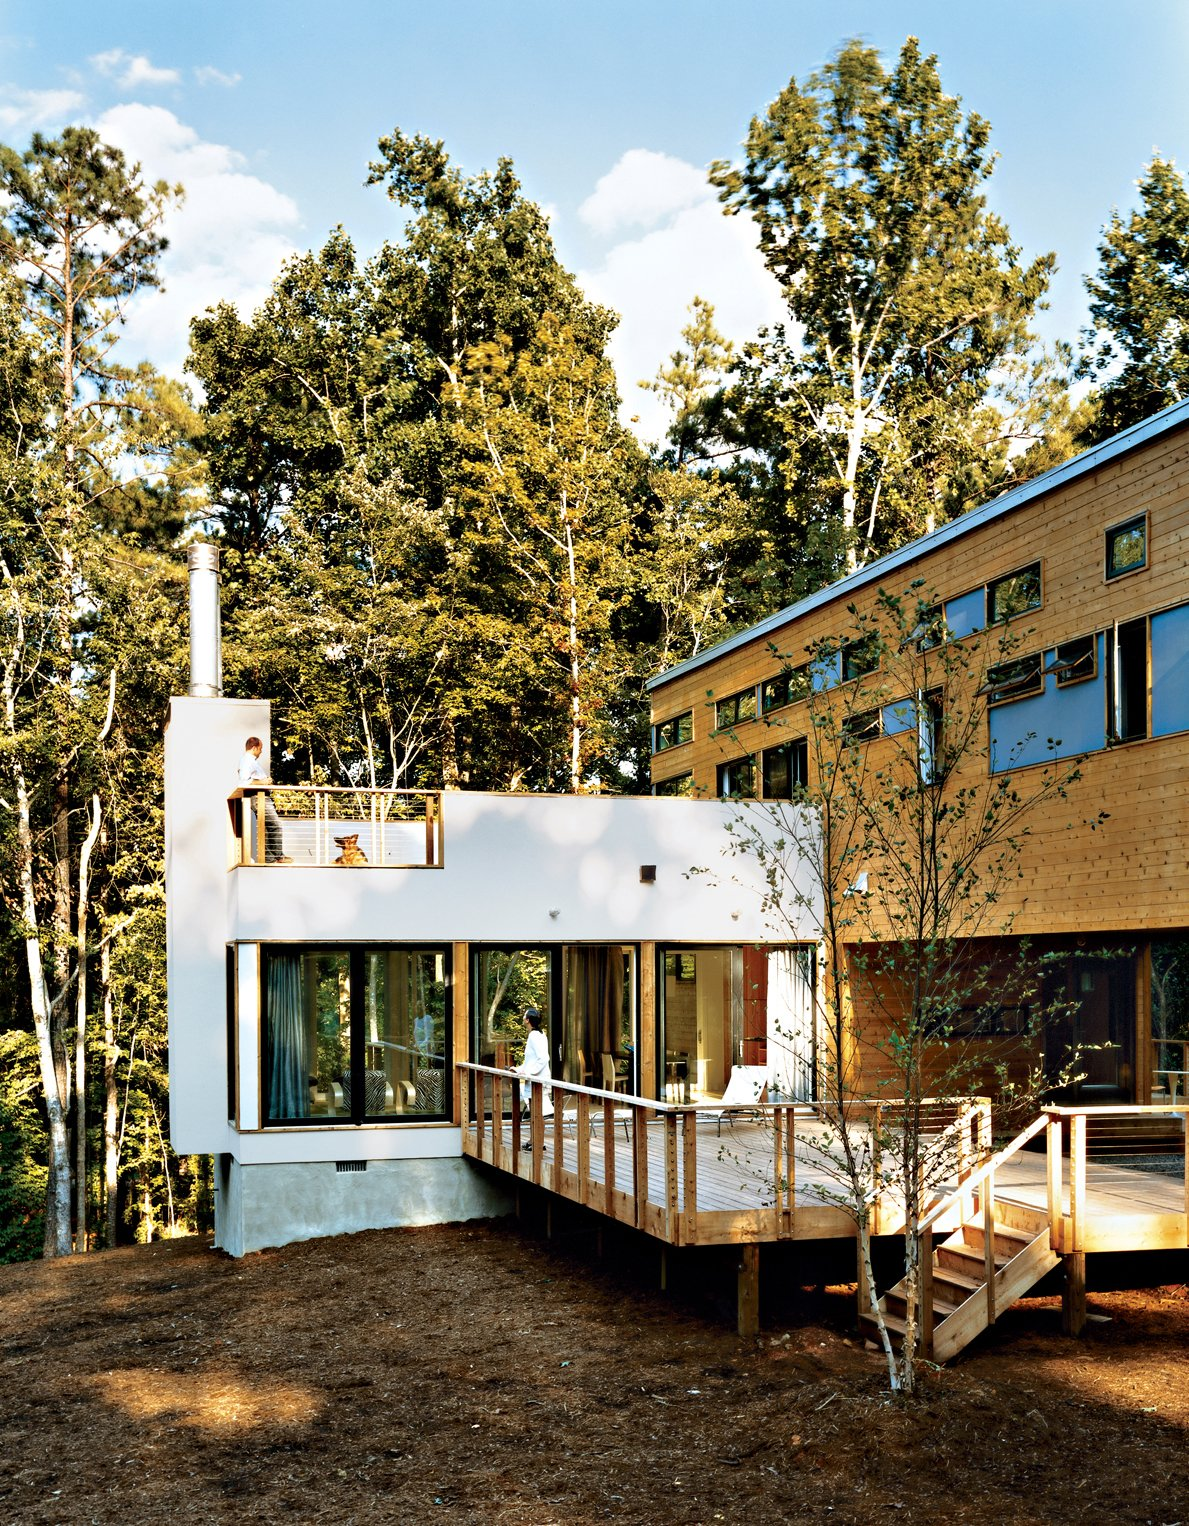 In 2003, Resolution: 4 Architecture was one of 16 firms who participated in the Dwell Home Design Invitational, a competition to design a modern prefab home for $200,000.  Best Photos from Prefab, Proven